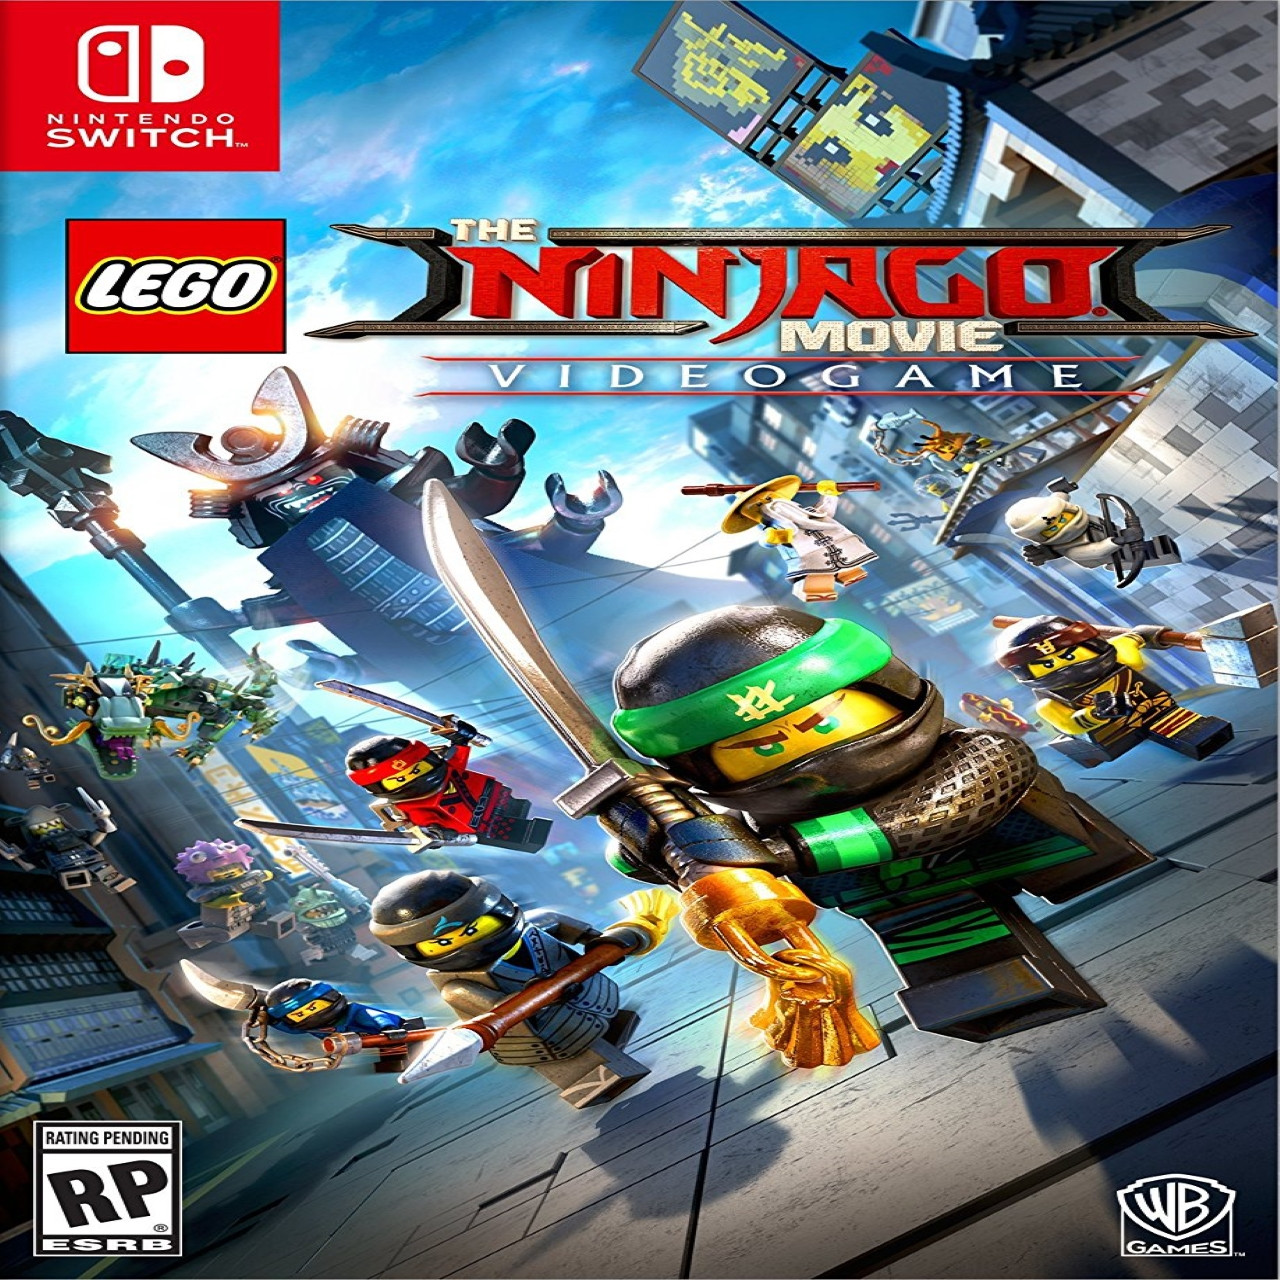 The LEGO Ninjago Movie Video Game SUB Nintendo Switch (NEW)